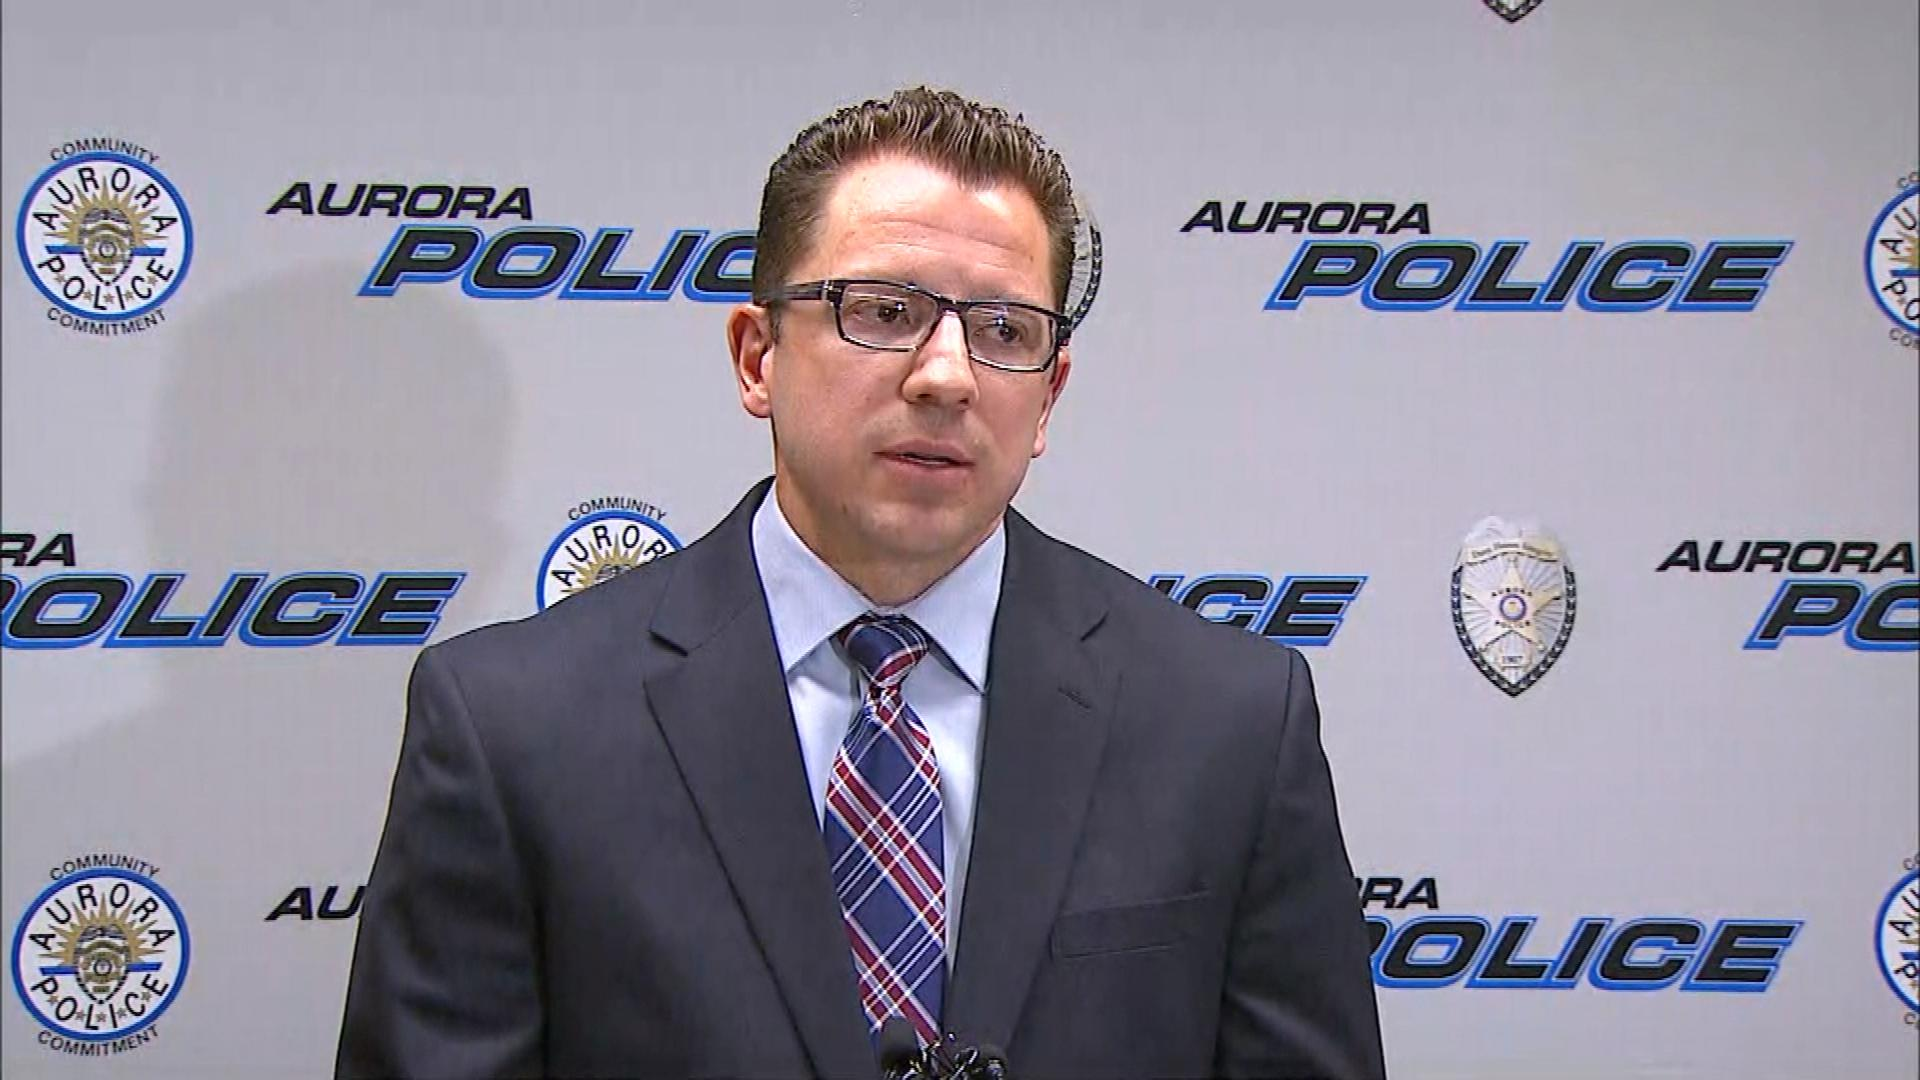 Major Crimes Sgt. Matt Fyles at the news conference on Tuesday (credit: CBS)